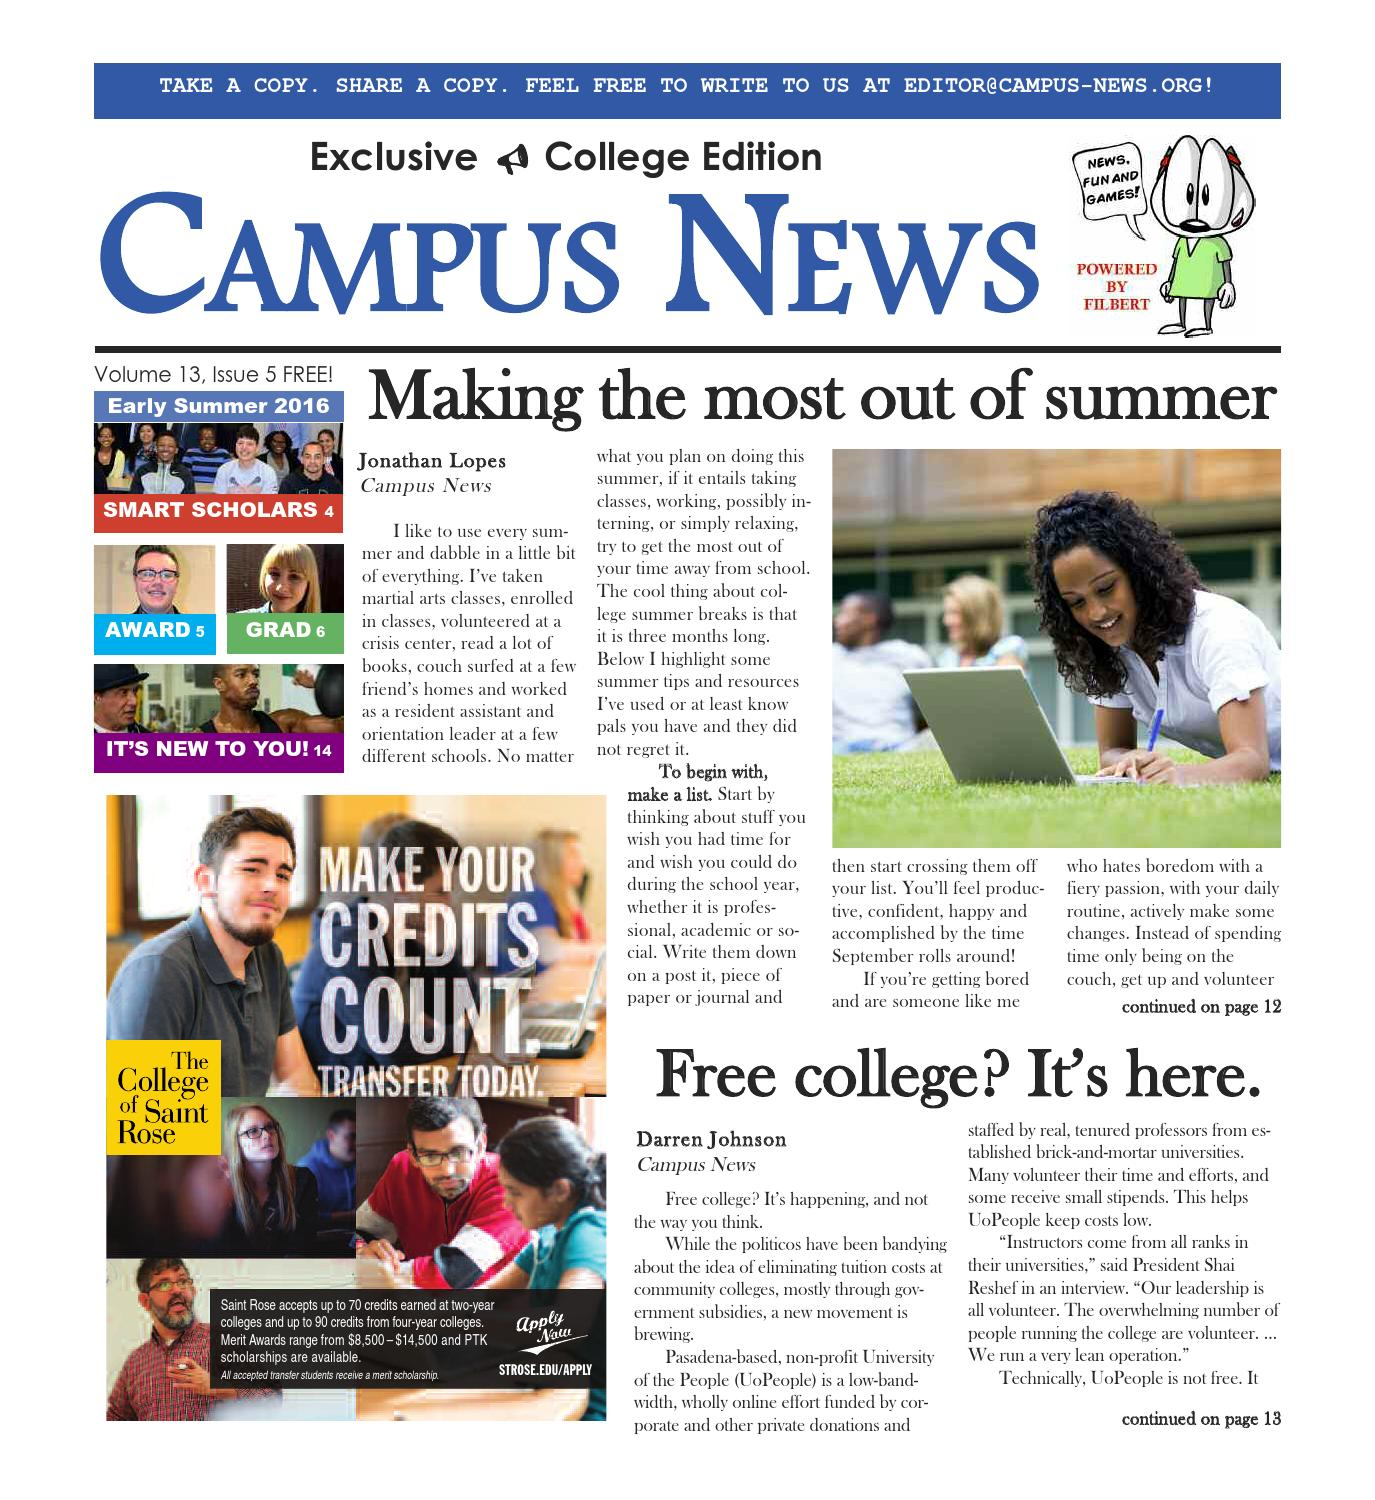 CAMPUS NEWS: The early summer issue!